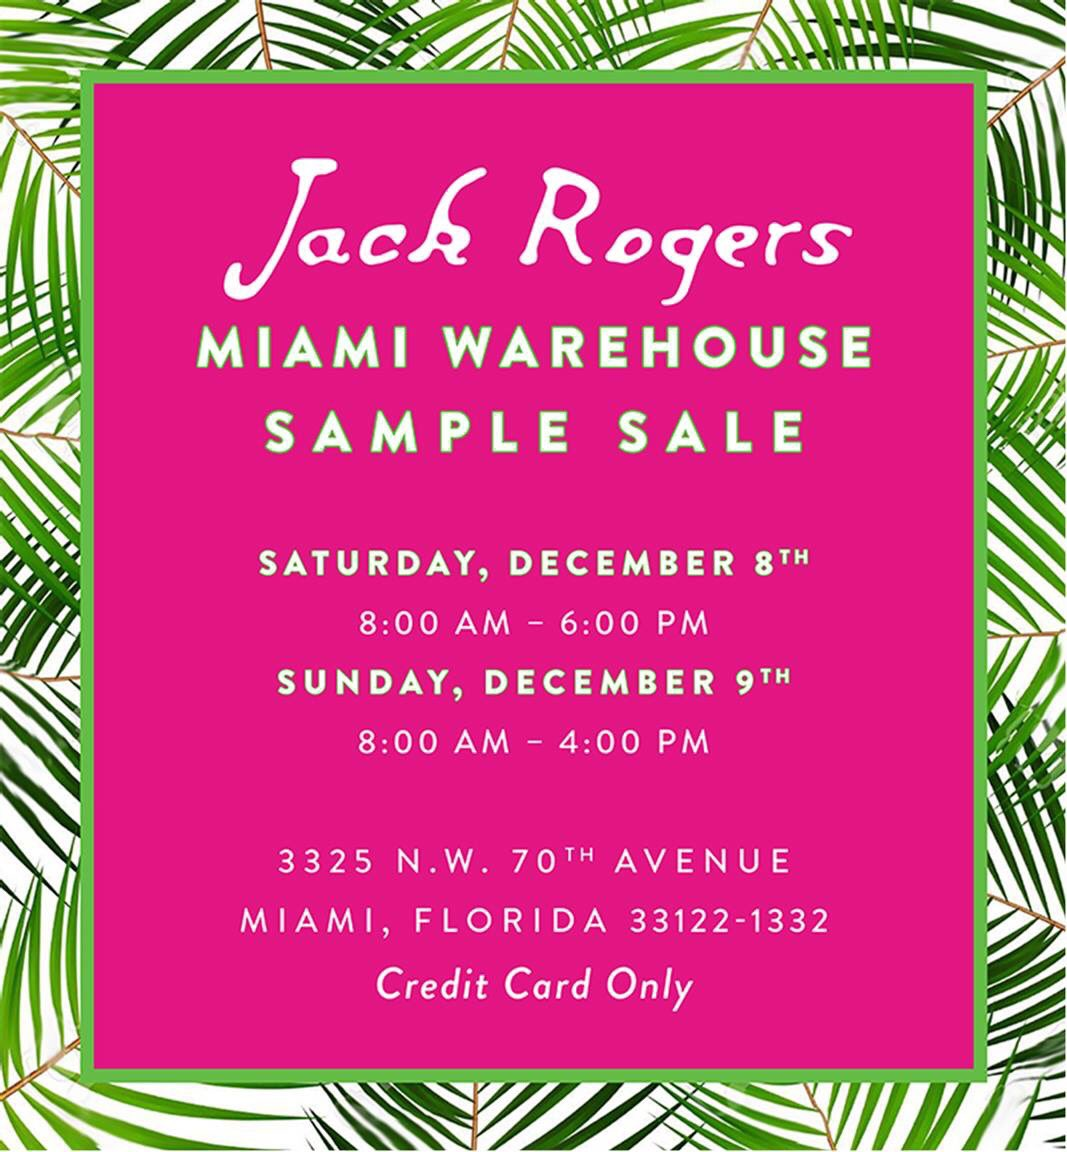 JACK ROGERS SAMPLE SALE https://t.co/dTimstISb1